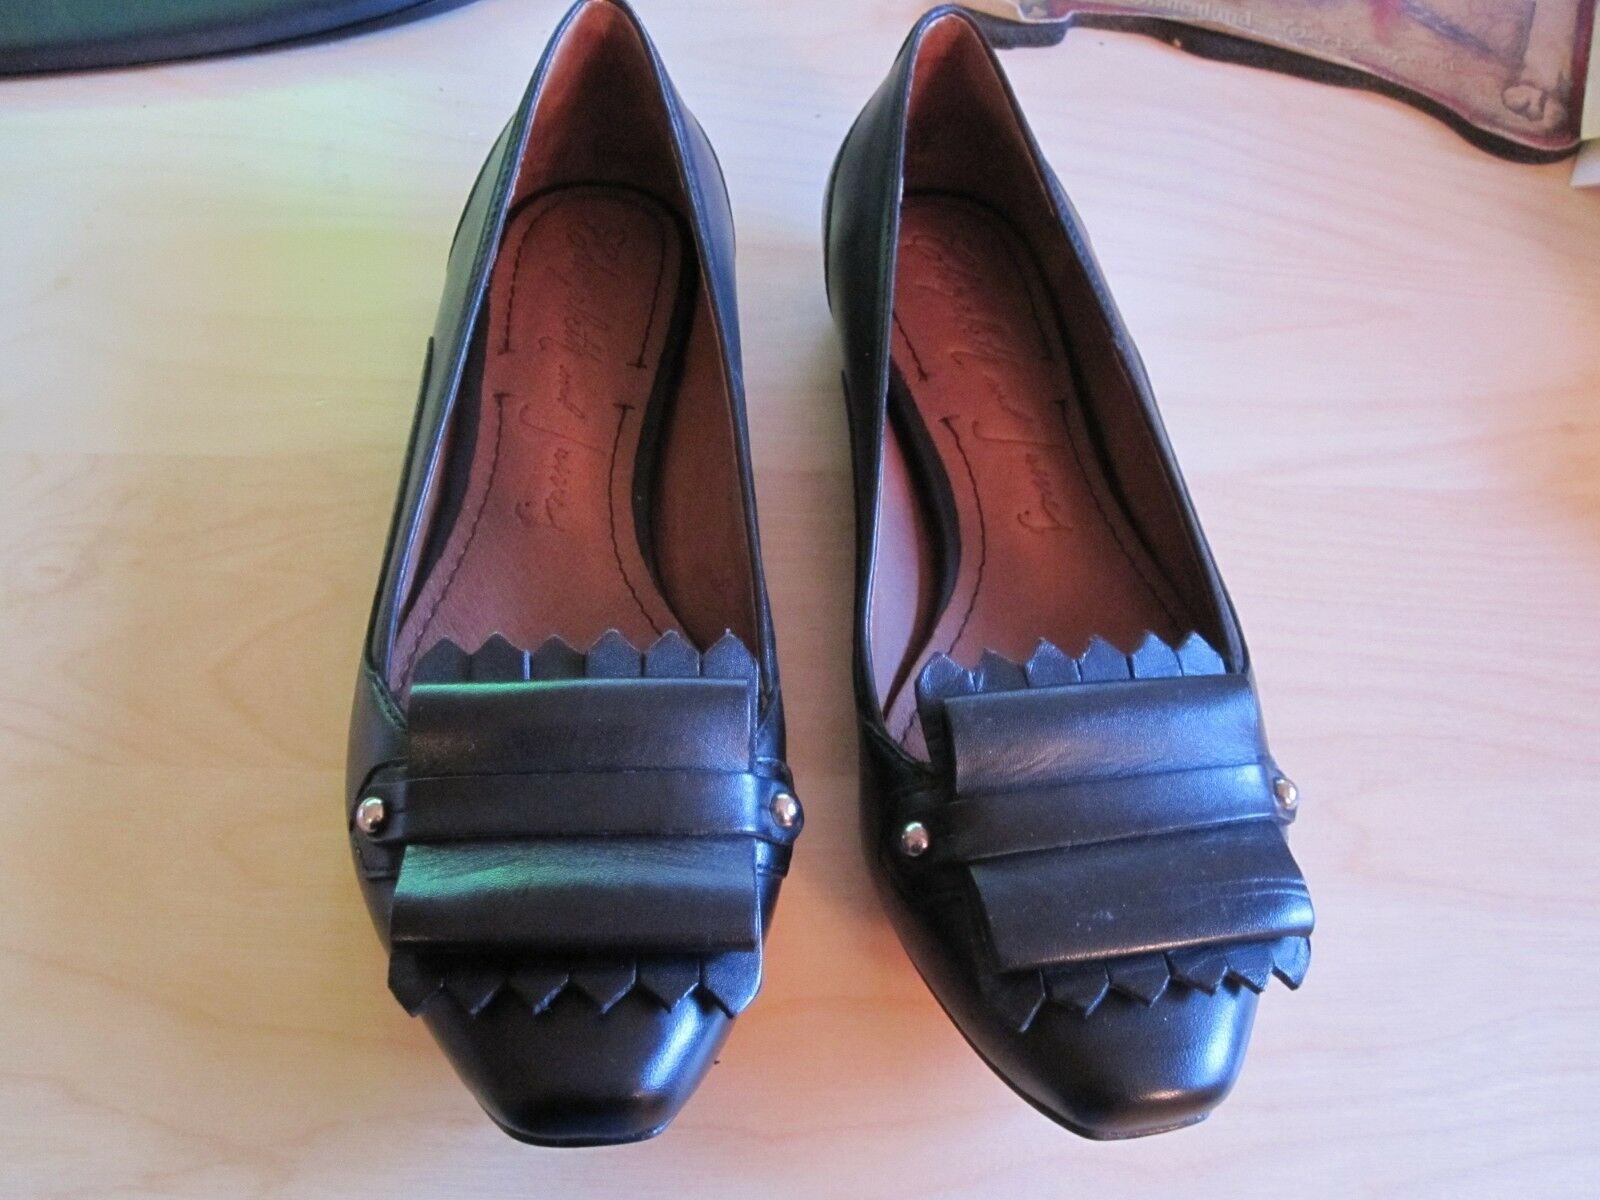 NEW NEW NEW Elizabeth and James Gavin black leather flats loafers 6.5 women's f723a5